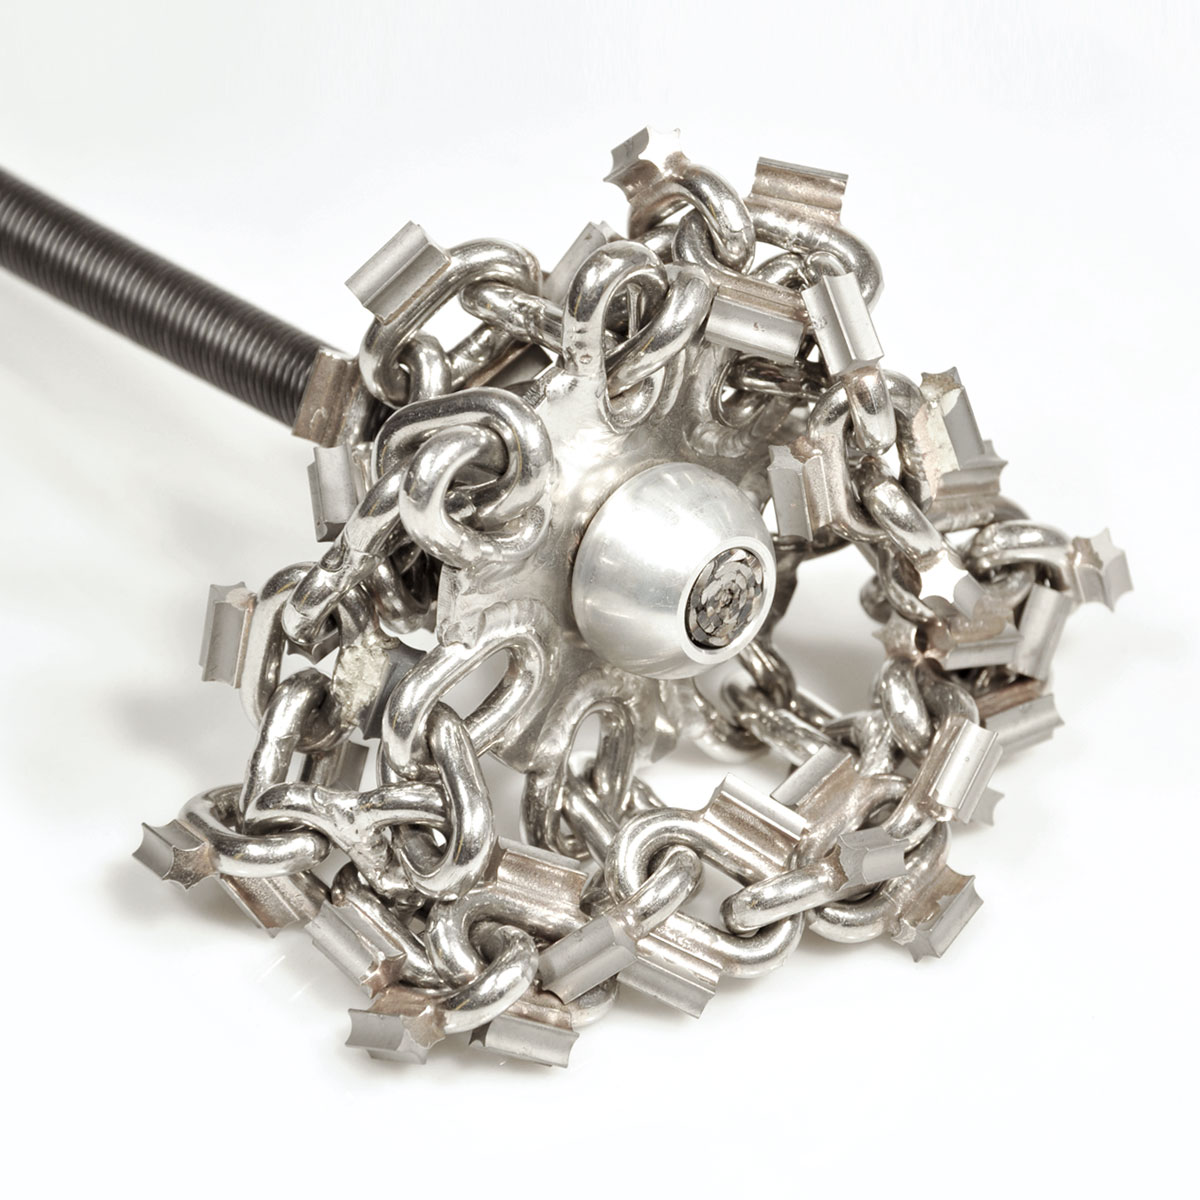 CIRCULAR CHAINS FOR 8mm SHAFT STAR BIT